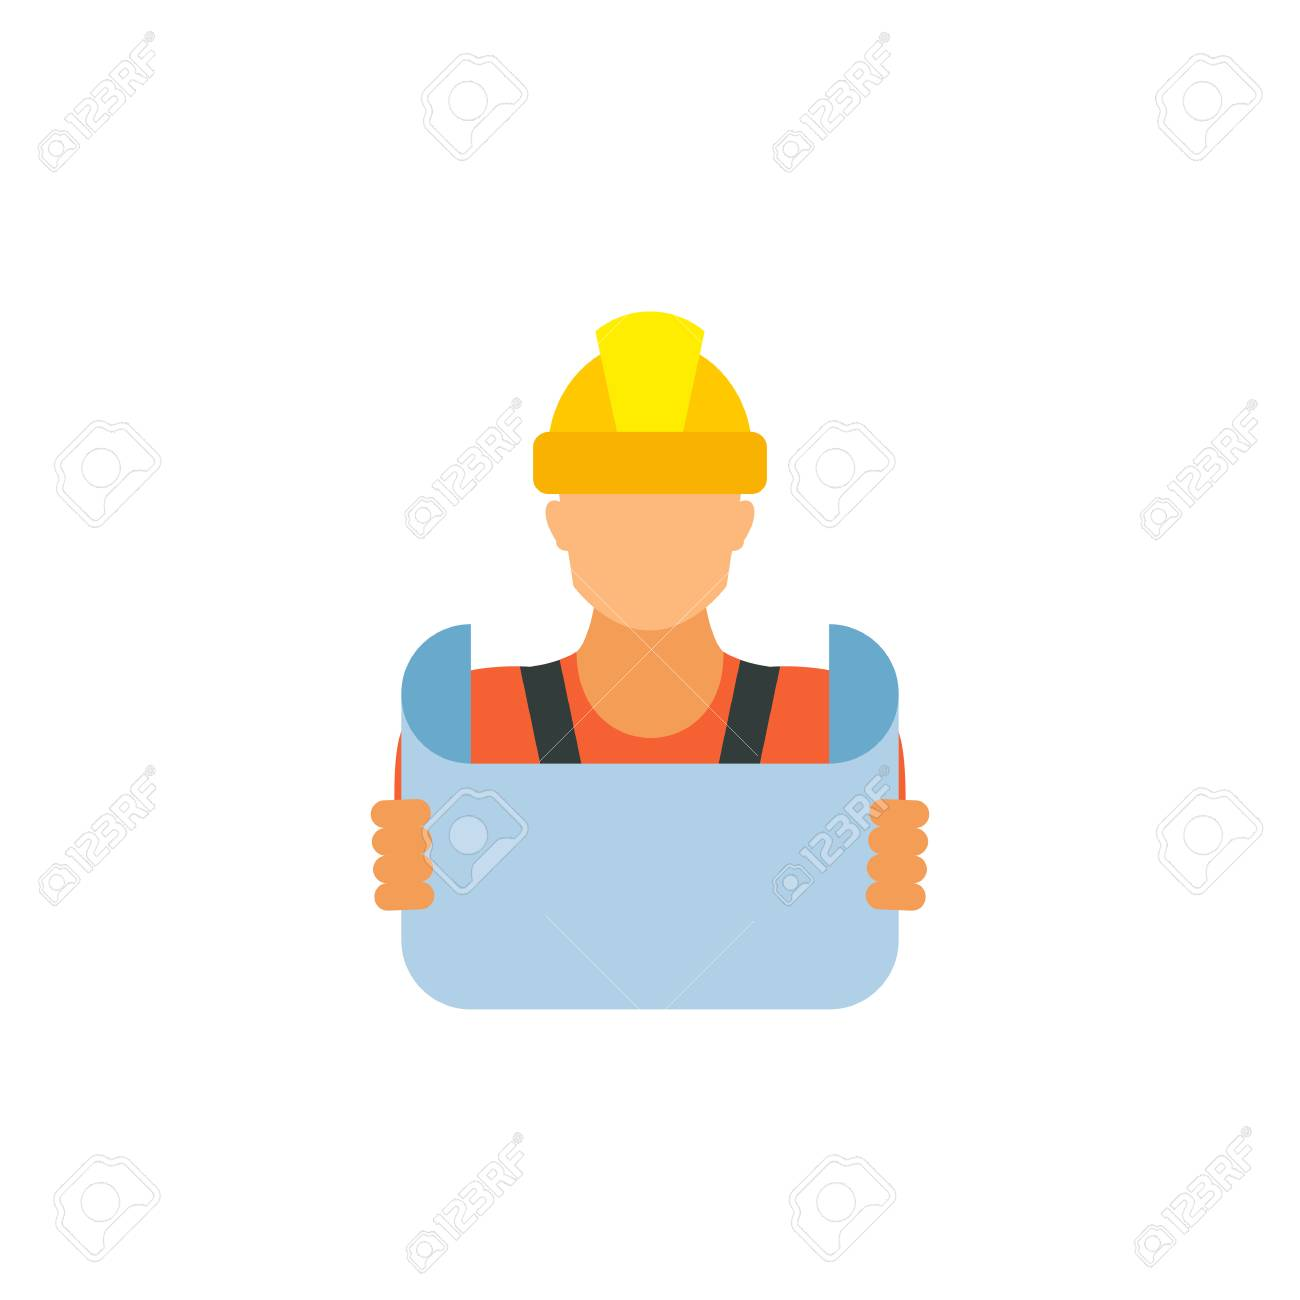 Icon of reviewing blueprint engineer building contractor foreman icon of reviewing blueprint engineer building contractor foreman engineering concept can malvernweather Image collections